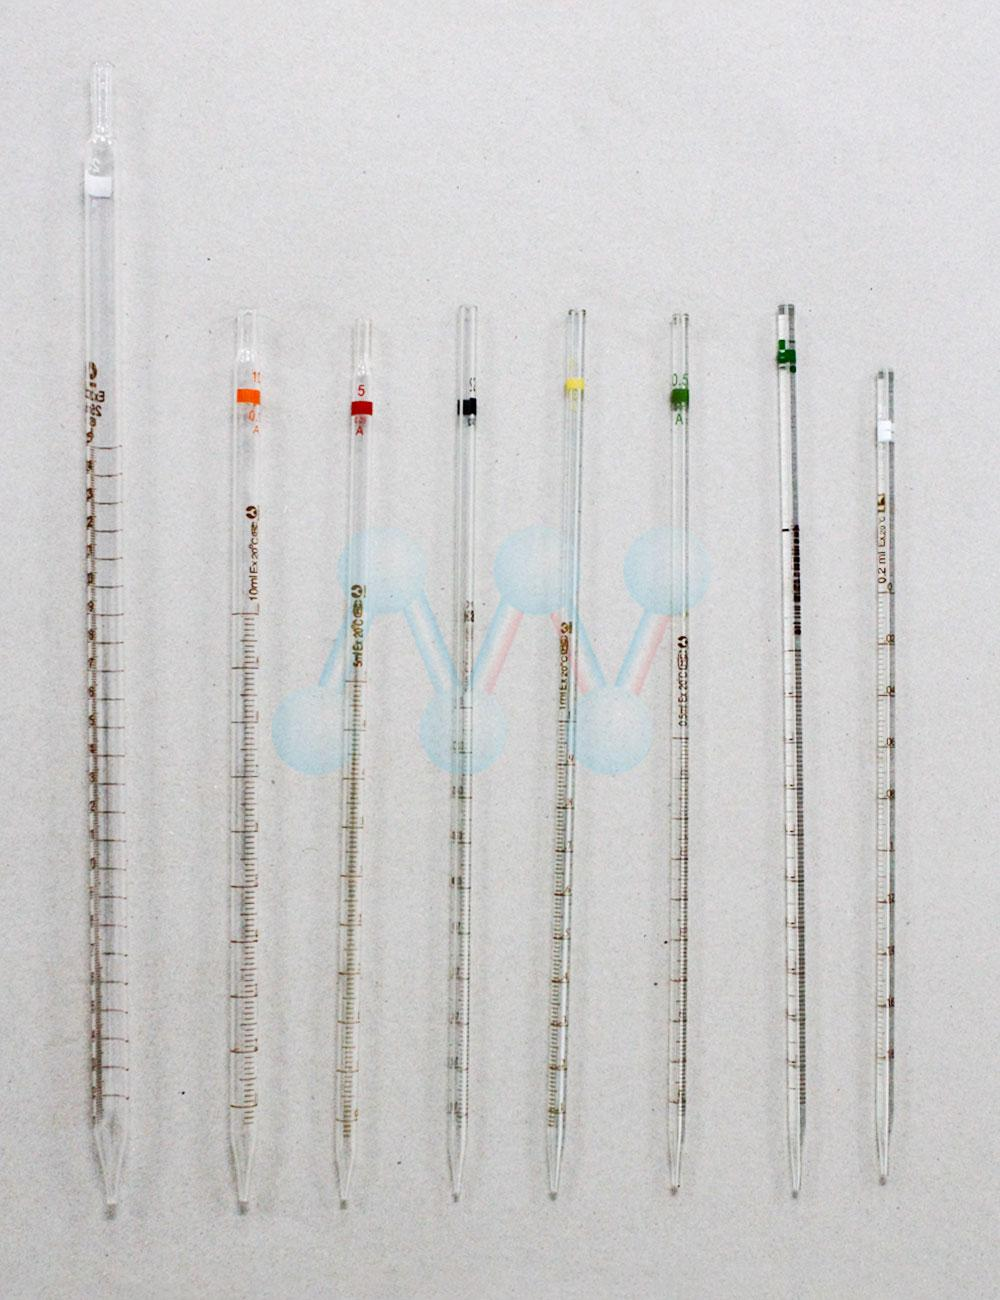 Pipette thẳng